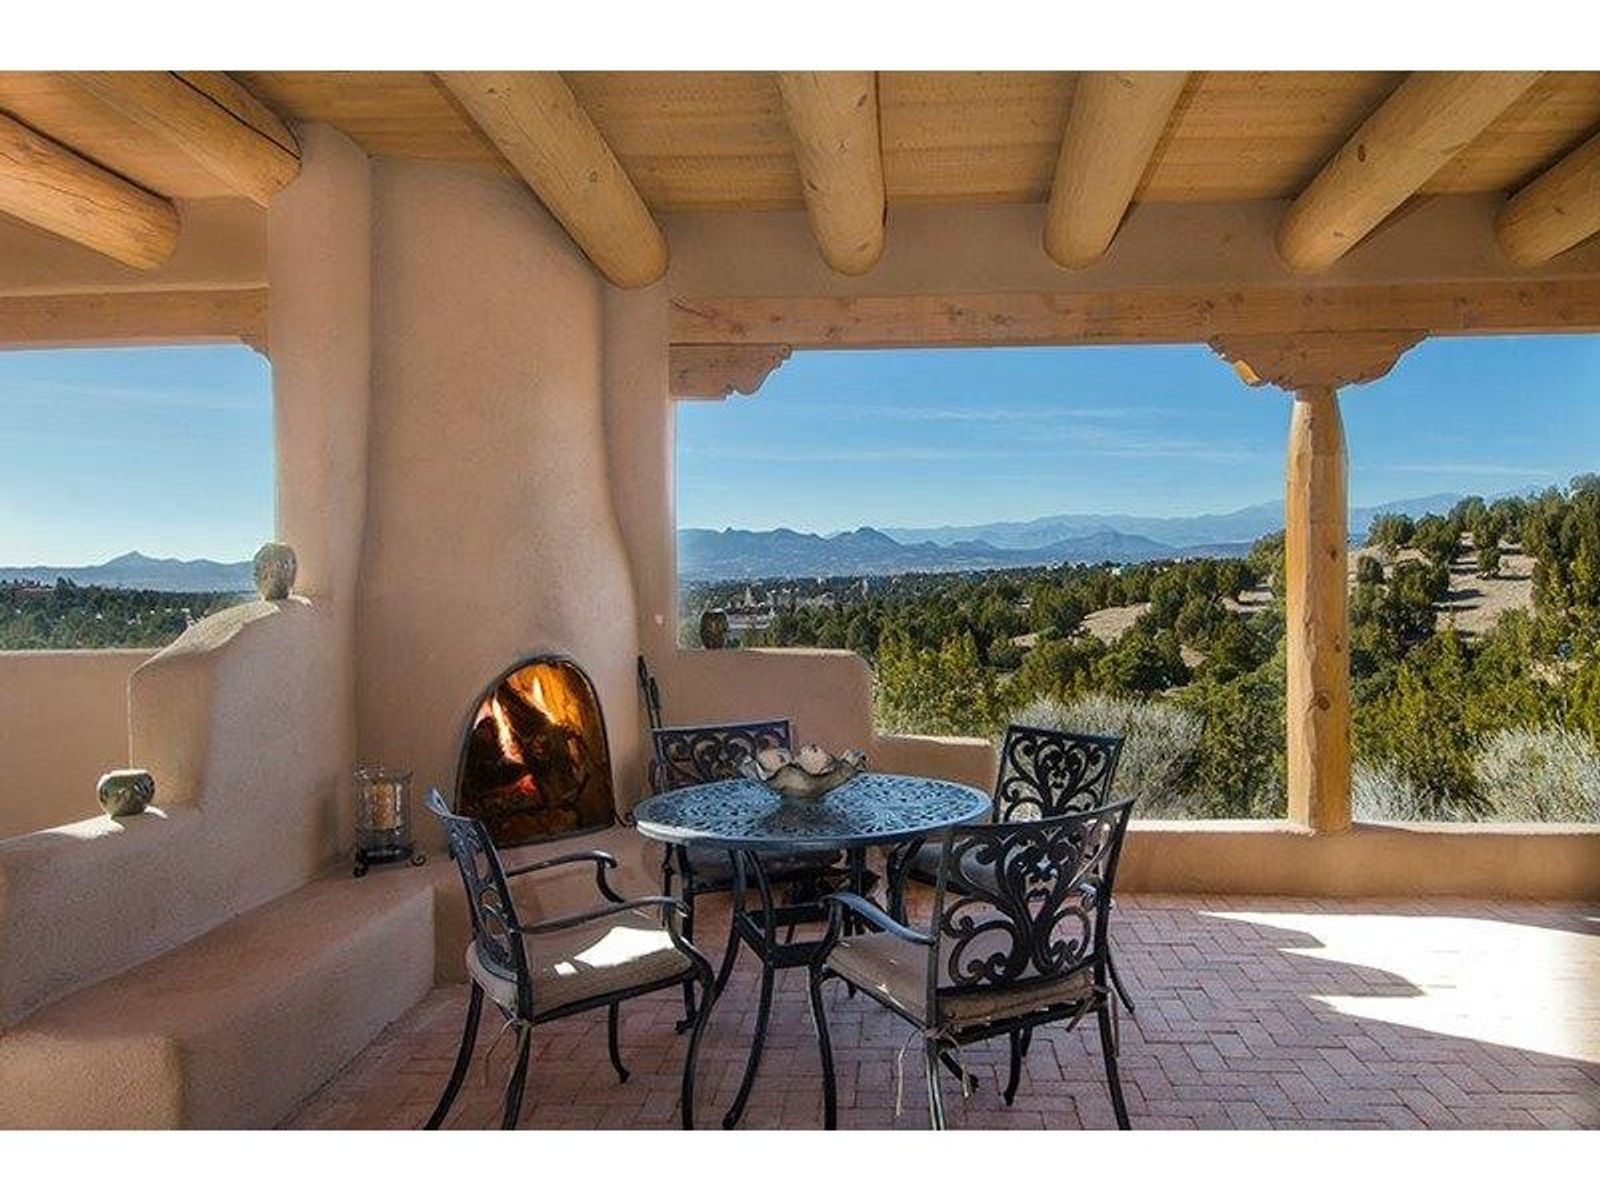 16B Camino Calabasas, Santa Fe NM Single Family Home - Santa Fe Real Estate